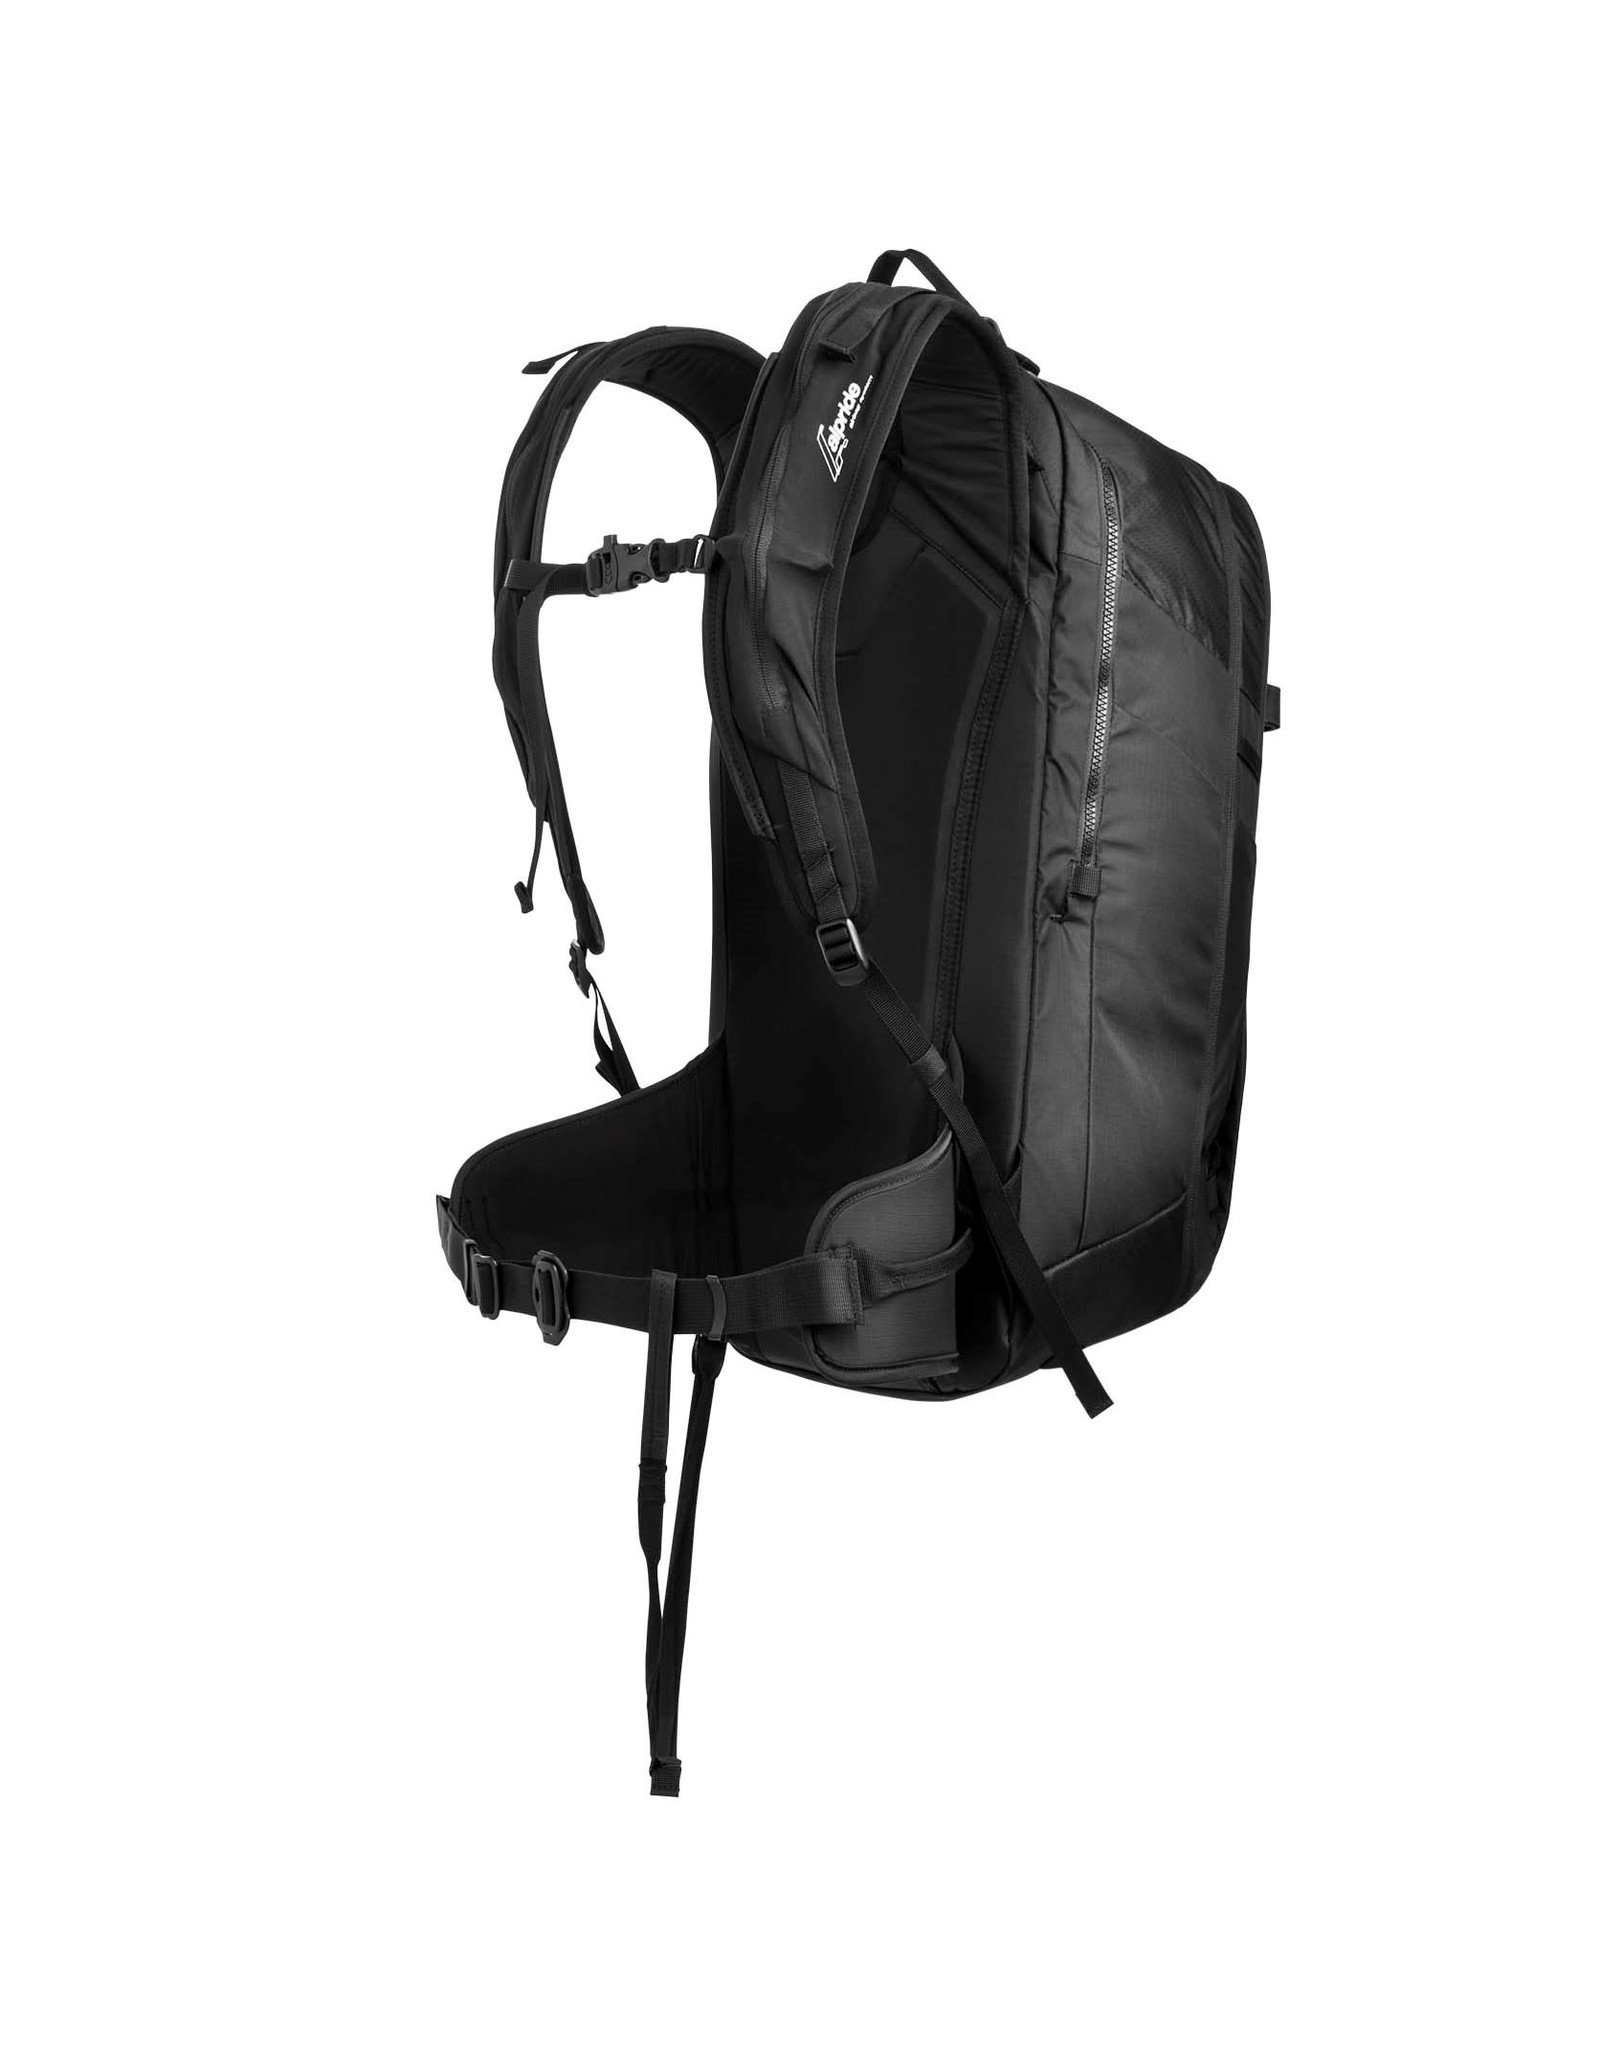 Black Diamond Black Diamond JetForce Tour 26L Airbag